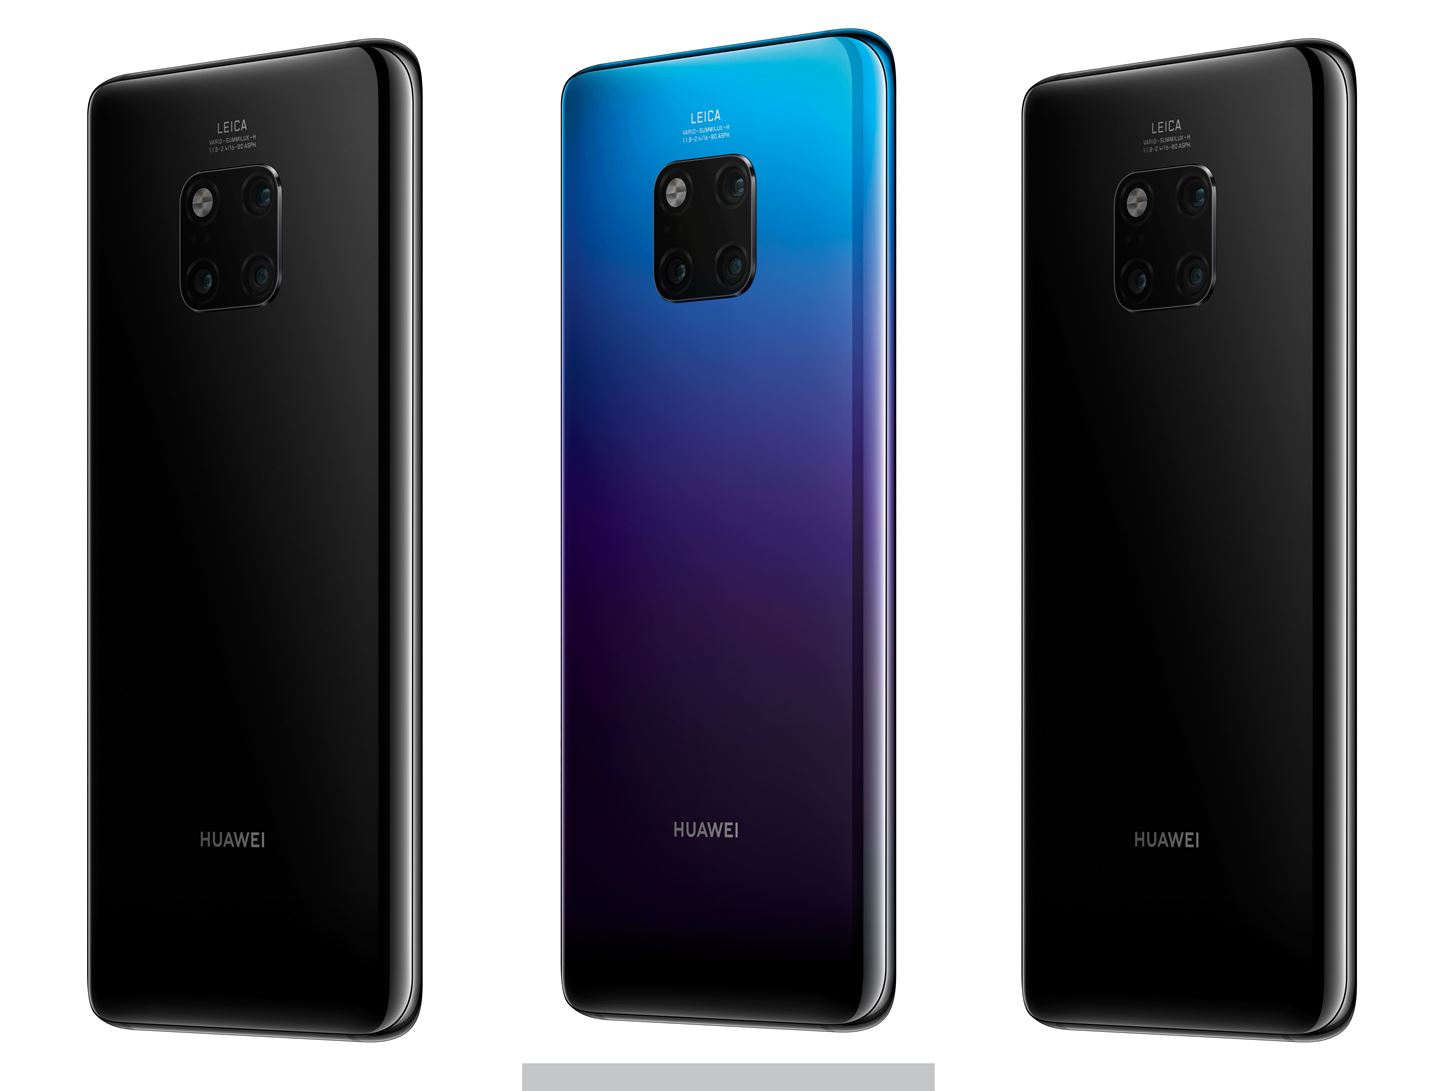 Huawei Mate 20 Pro — Finally, a Phone with Almost No Compromises